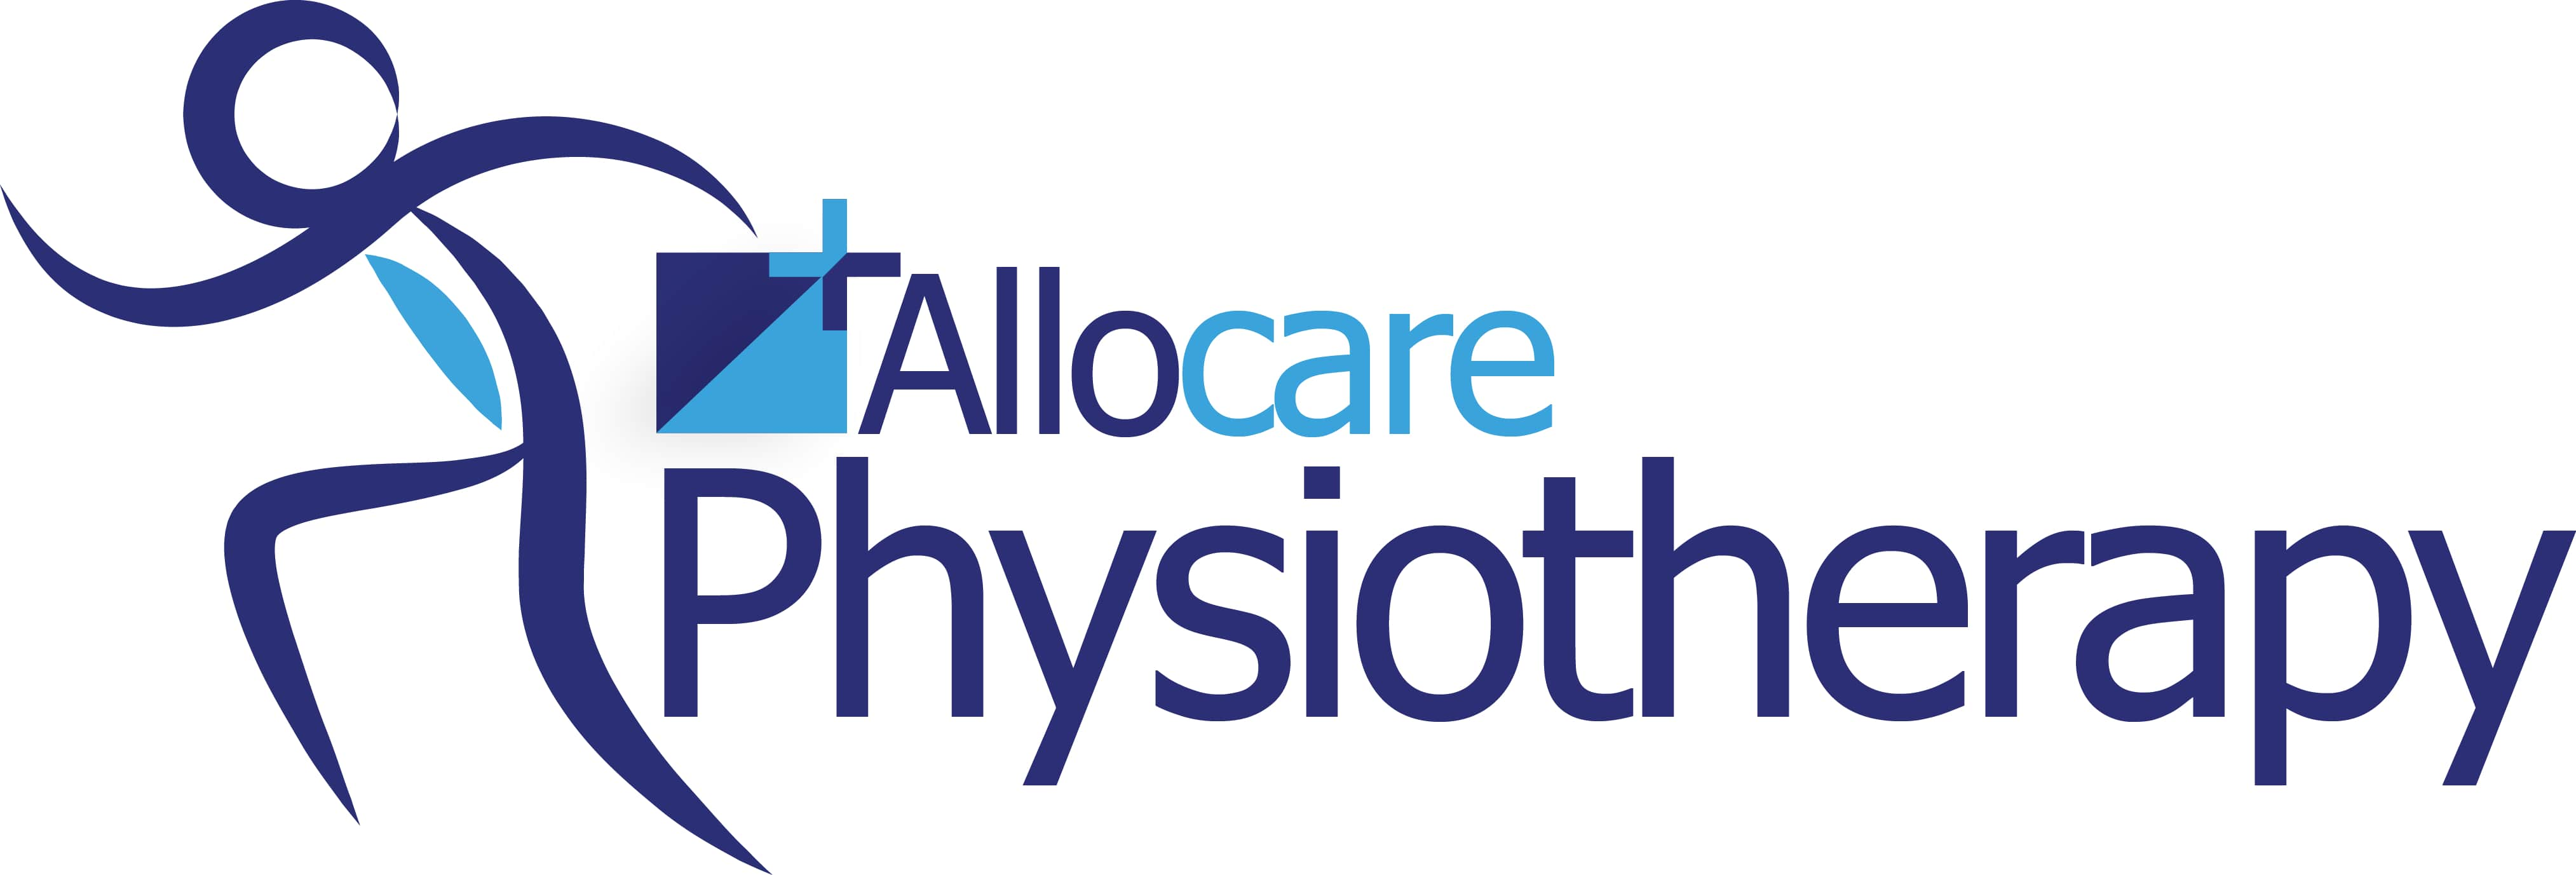 Allocare Physiotherapy